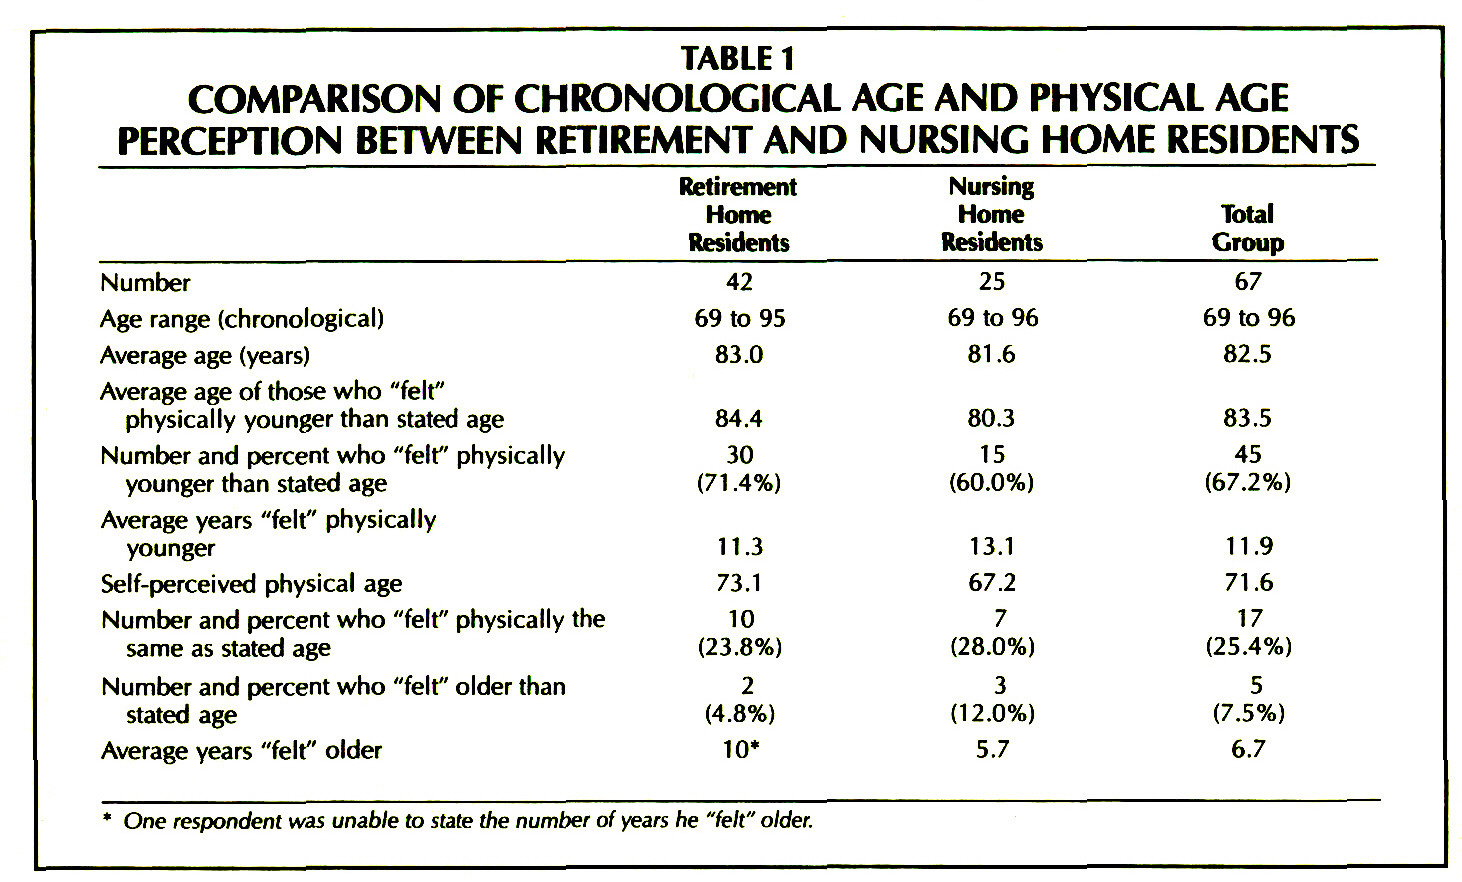 TABLE 1COMPARISON OF CHRONOLOGICAL AGE AND PHYSICAL AGE PERCEPTION BETWEEN RETIREMENT AND NURSING HOME RESIDENTS